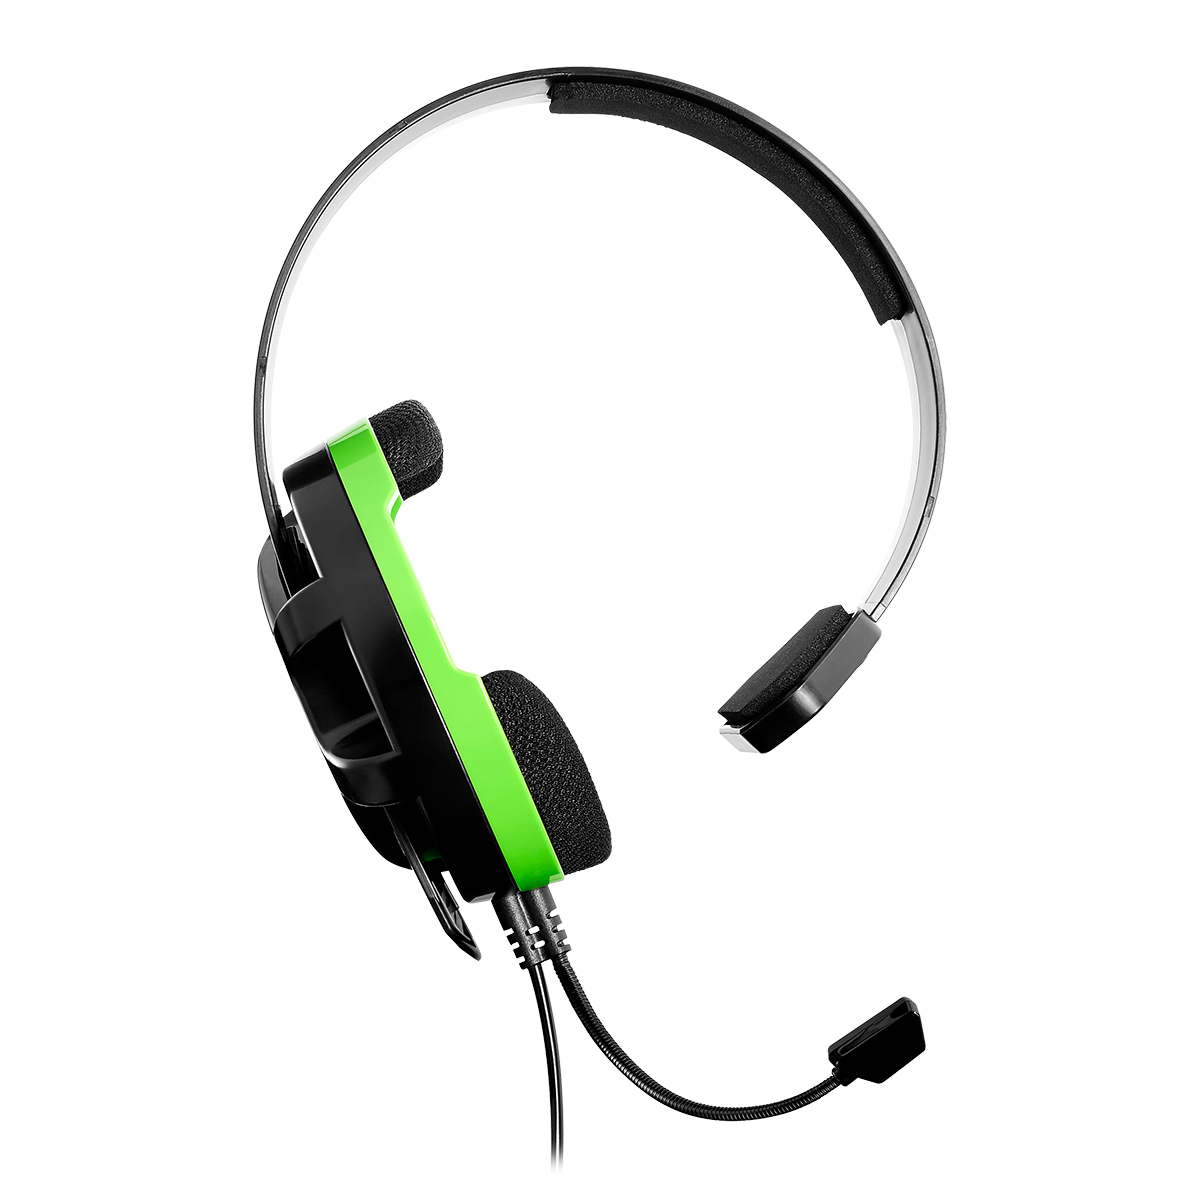 Recon Chat Headset for Xbox One - Lightweight & Reversible